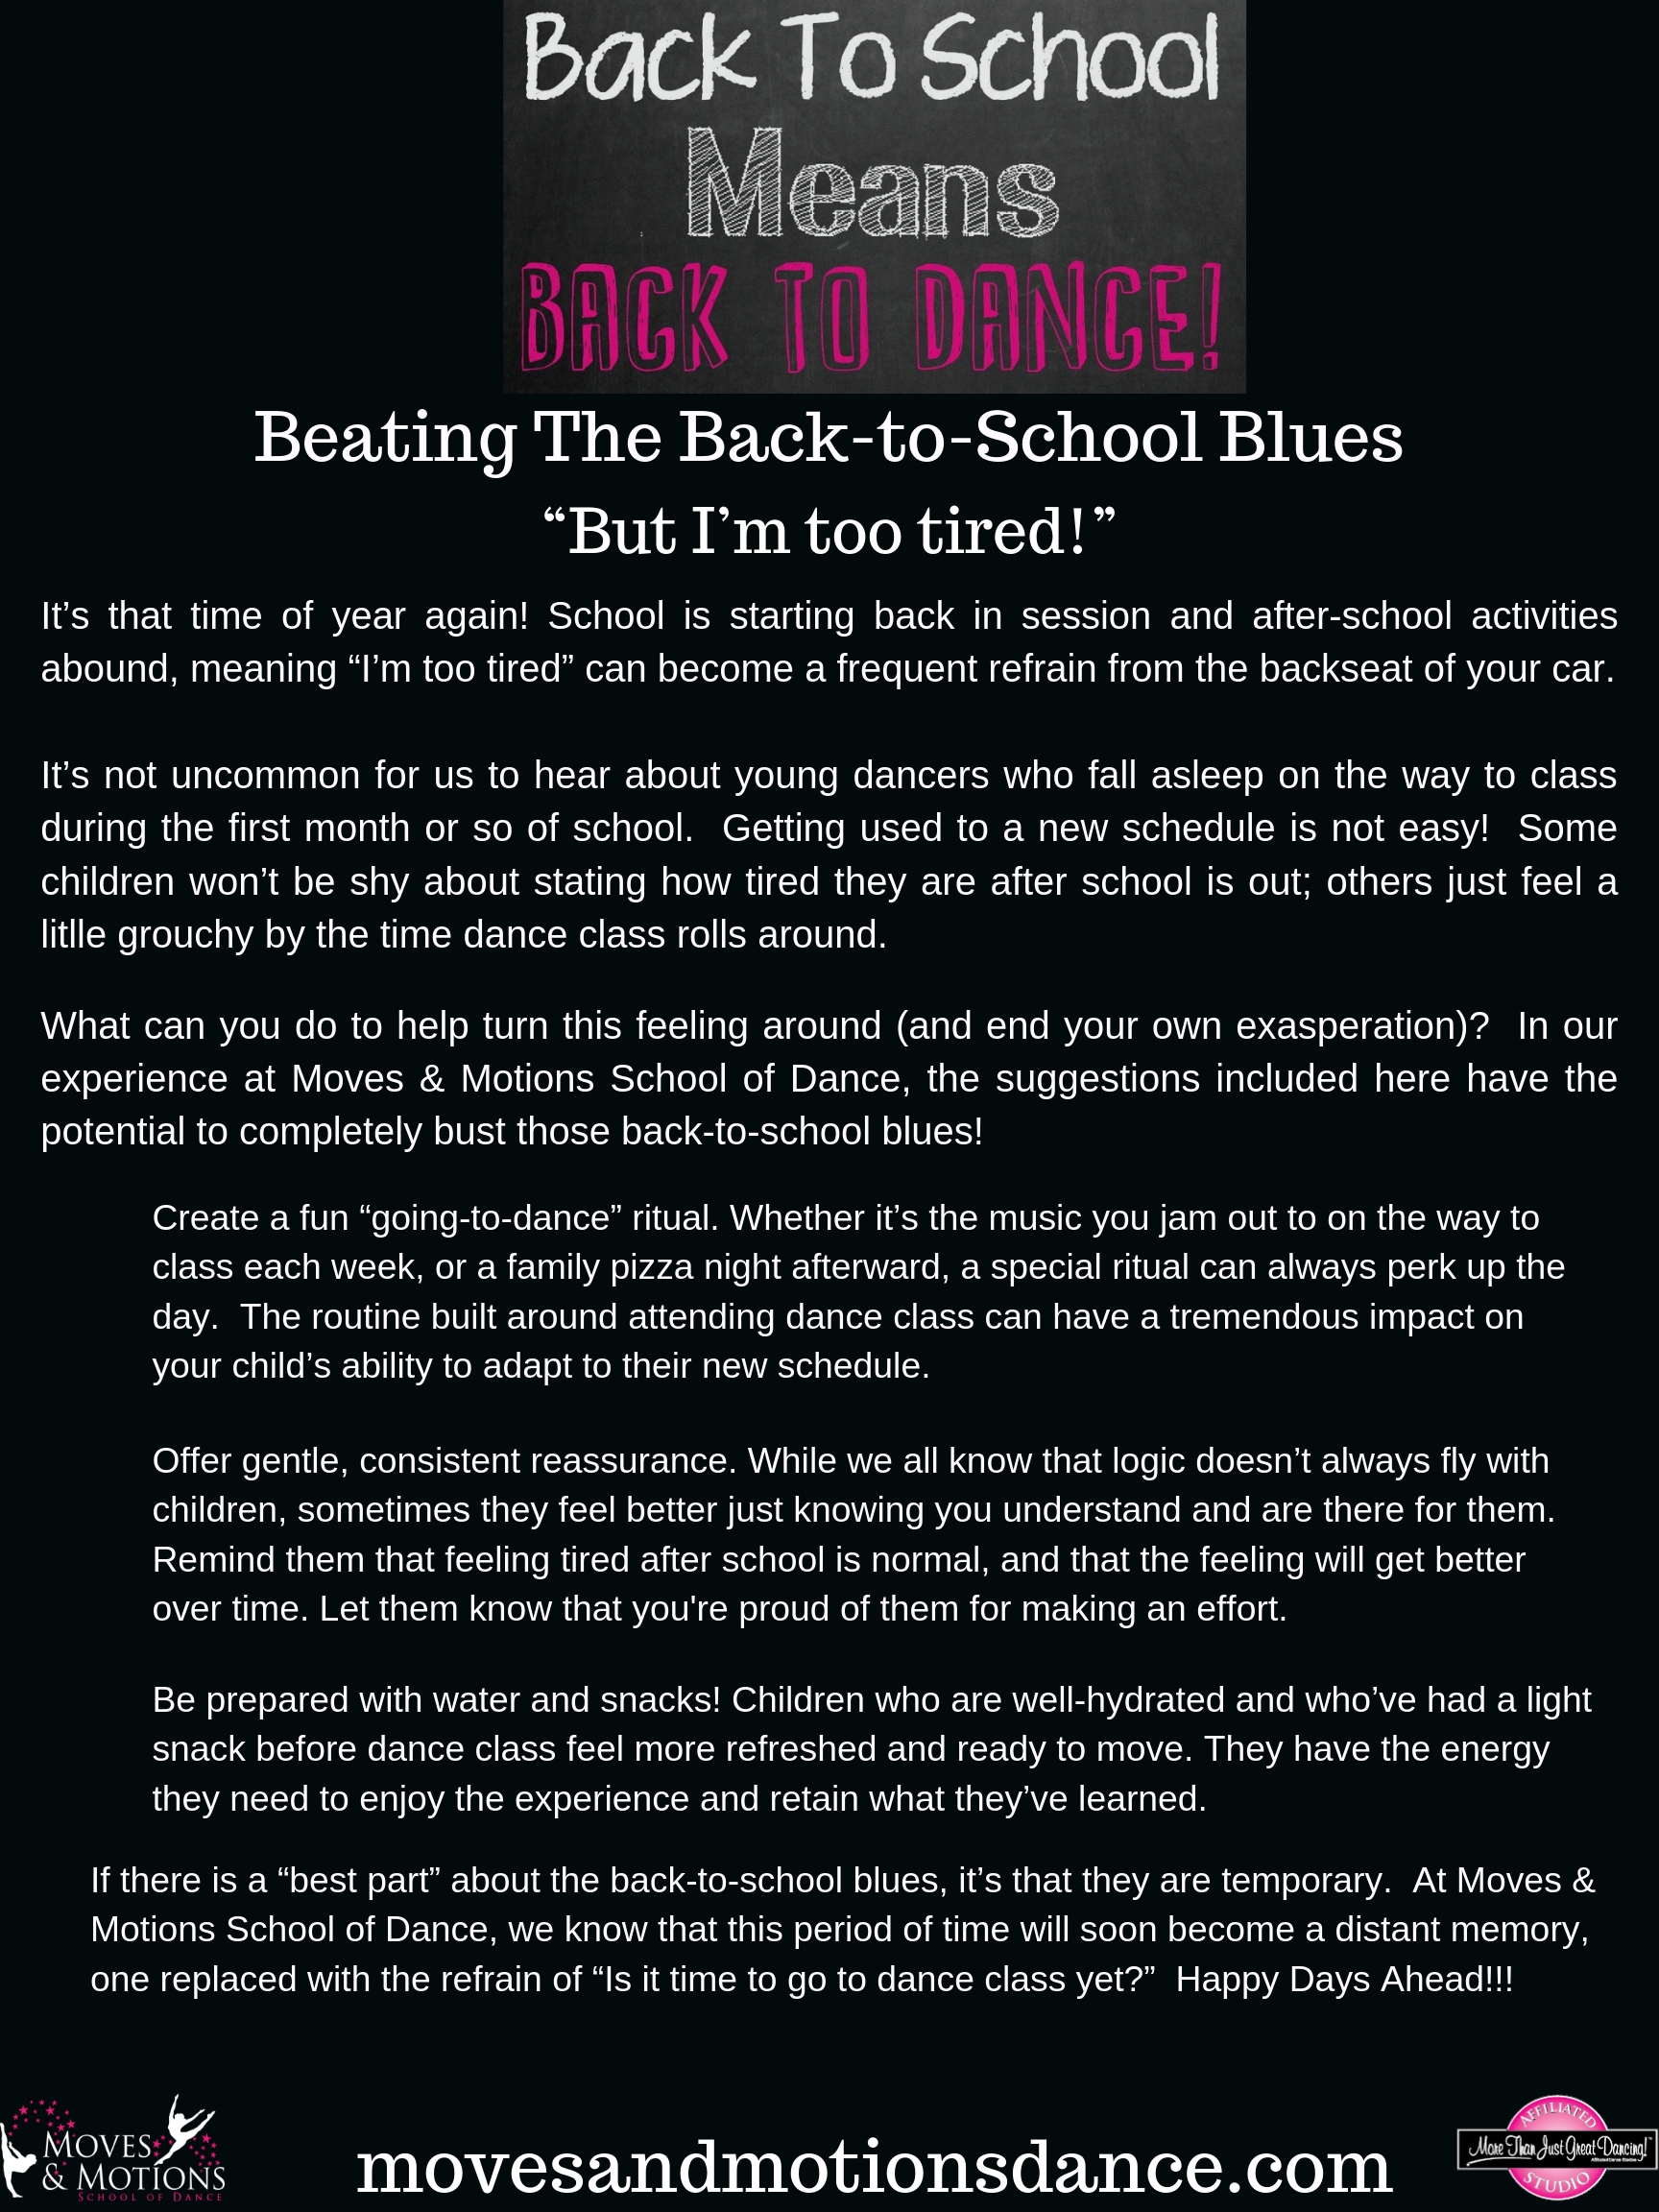 Beating The Back To School Blues – Moves & Motions School of